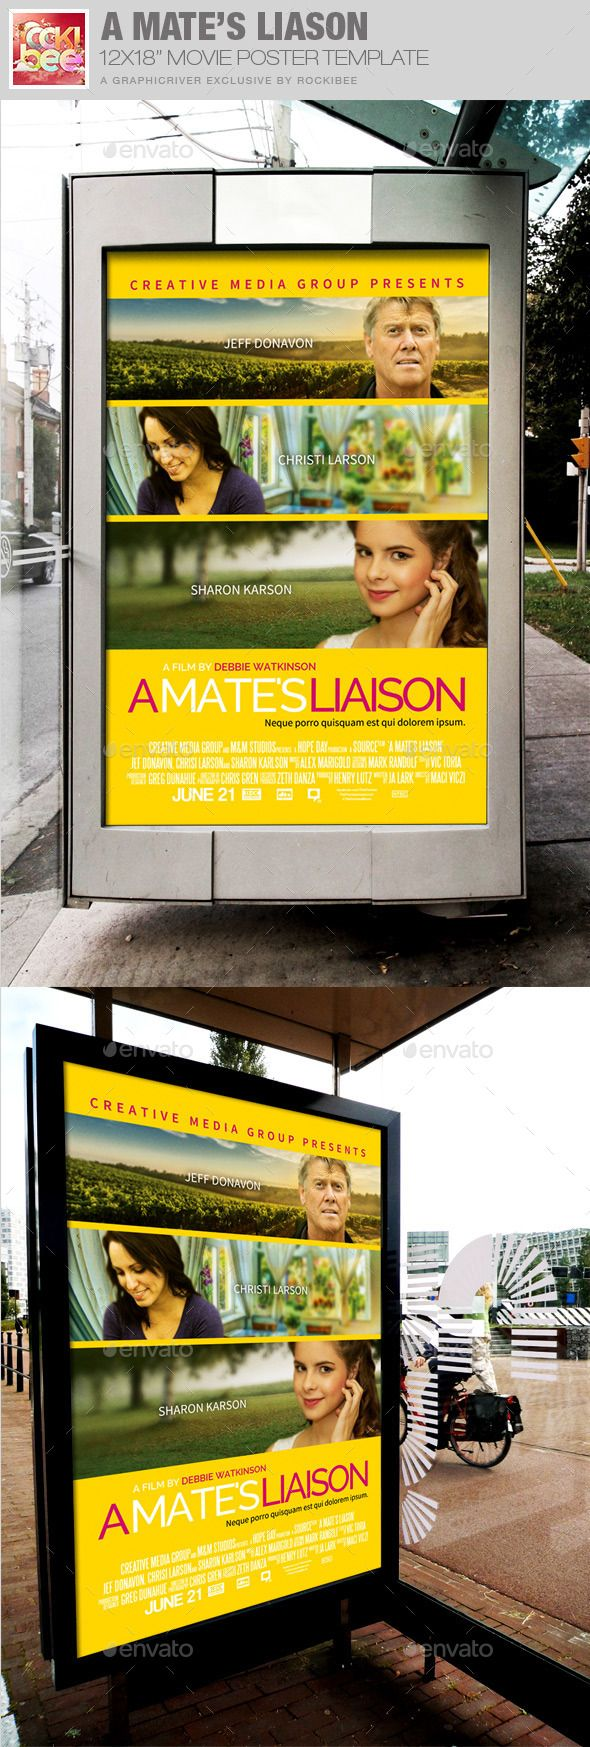 A Mate's Liaison Movie Poster Template — Photoshop PSD #outdoor #customizable • Available here → https://graphicriver.net/item/a-mates-liaison-movie-poster-template/12025424?ref=pxcr